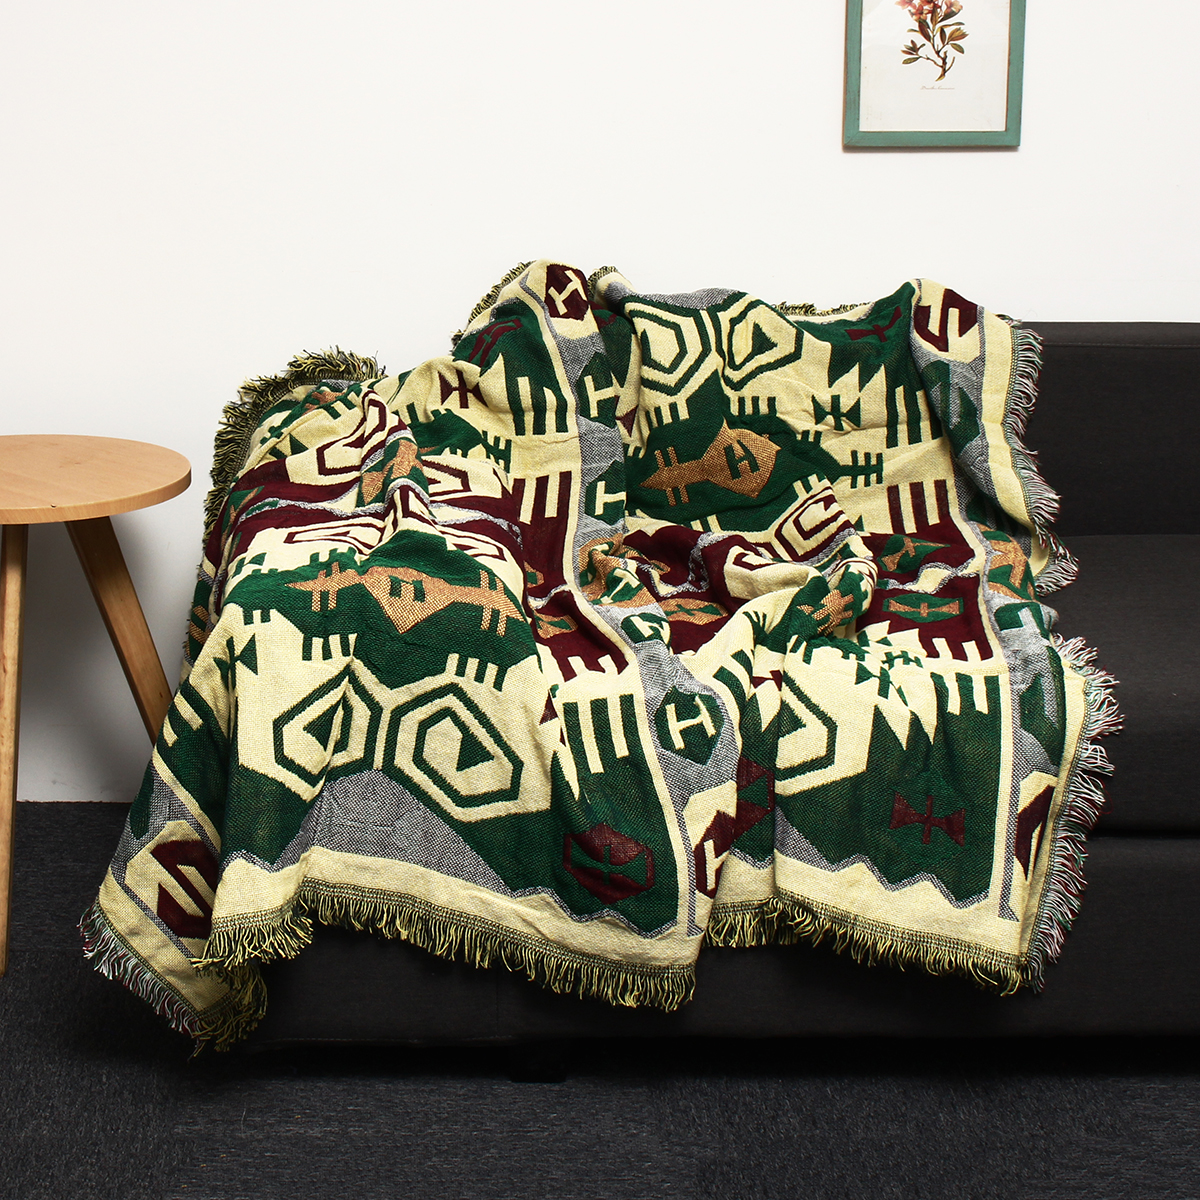 Picture of: 71 X51 Soft Cotton Throw Blanket Decorative Bohemian Ethnic Sofa Throw Blanket Knit Fringed Couch Blanket Living Room Bed Throw Blanket For All Season Walmart Com Walmart Com